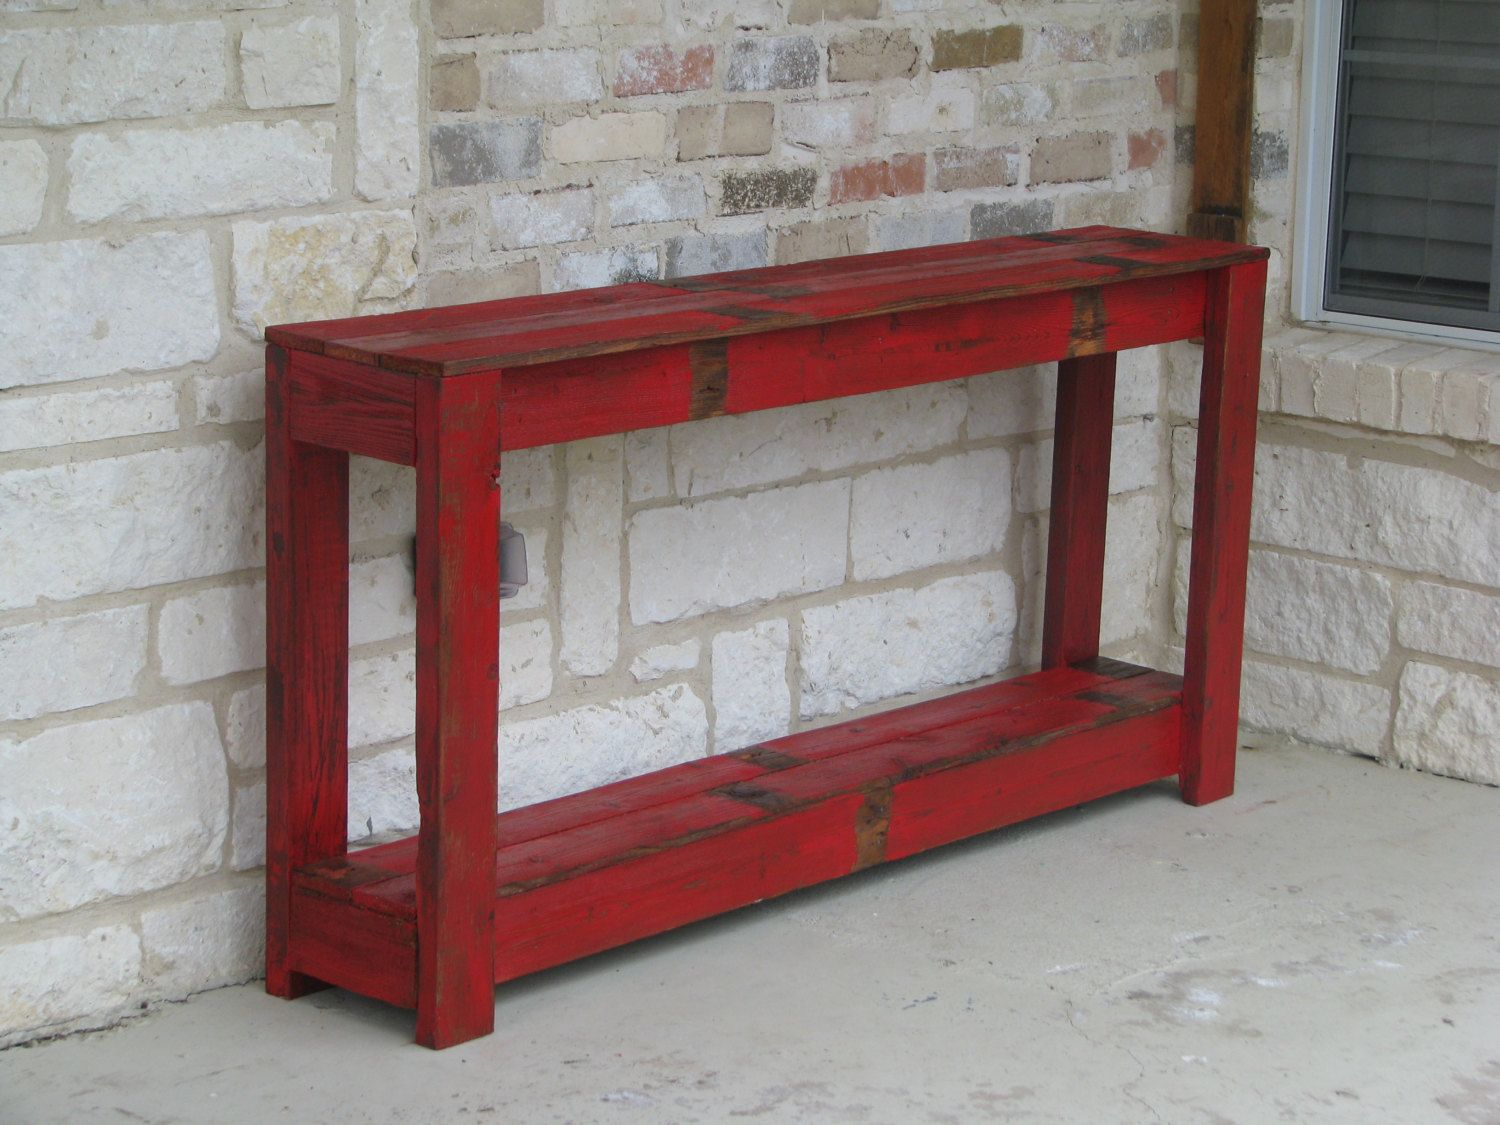 Rustic Sofa Table In Farmhouse Red By RusticExquisiteDsgn On Etsy